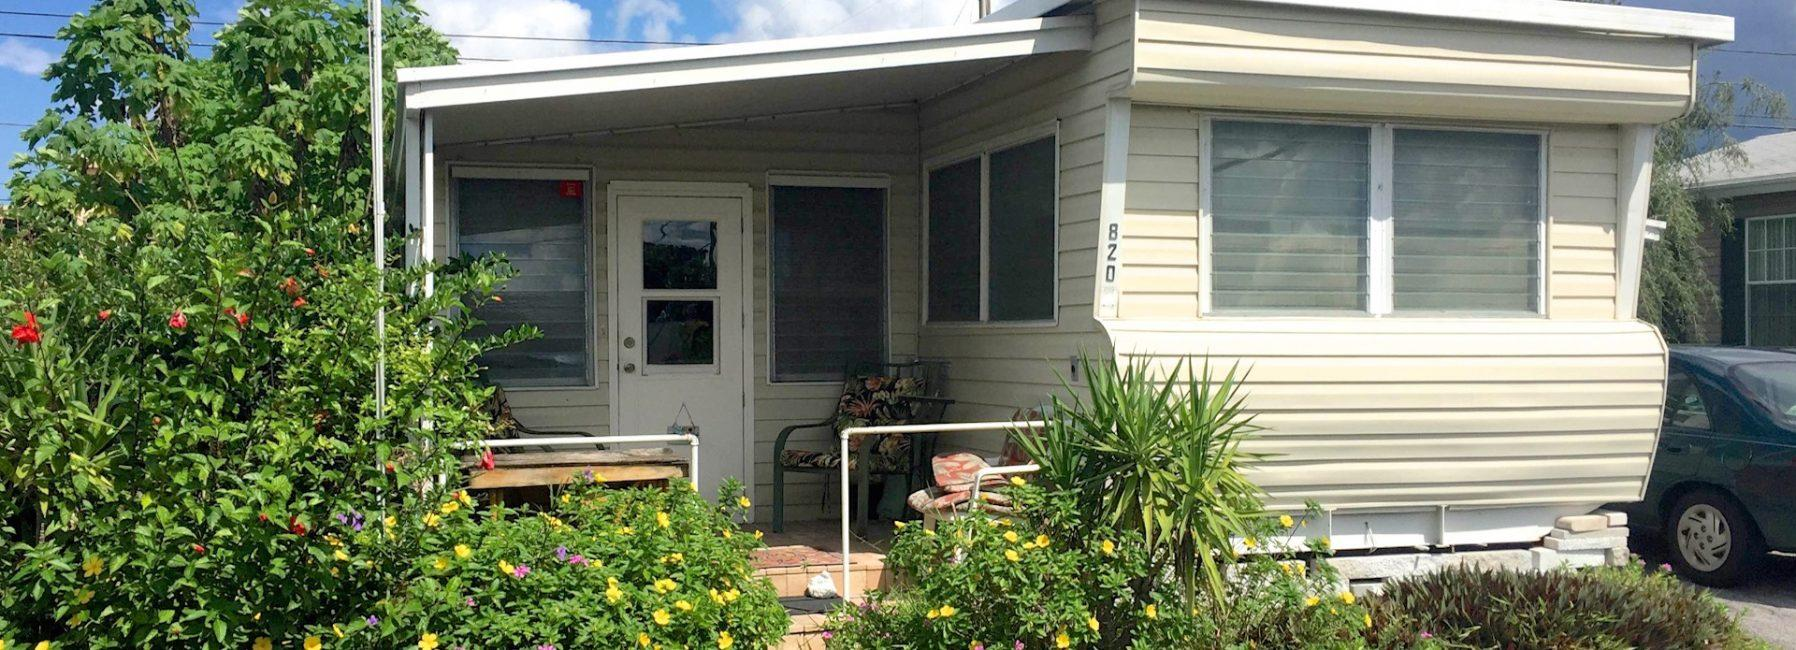 Mobile homes for sale in florida sunset mobile home sales for Icf homes for sale in florida